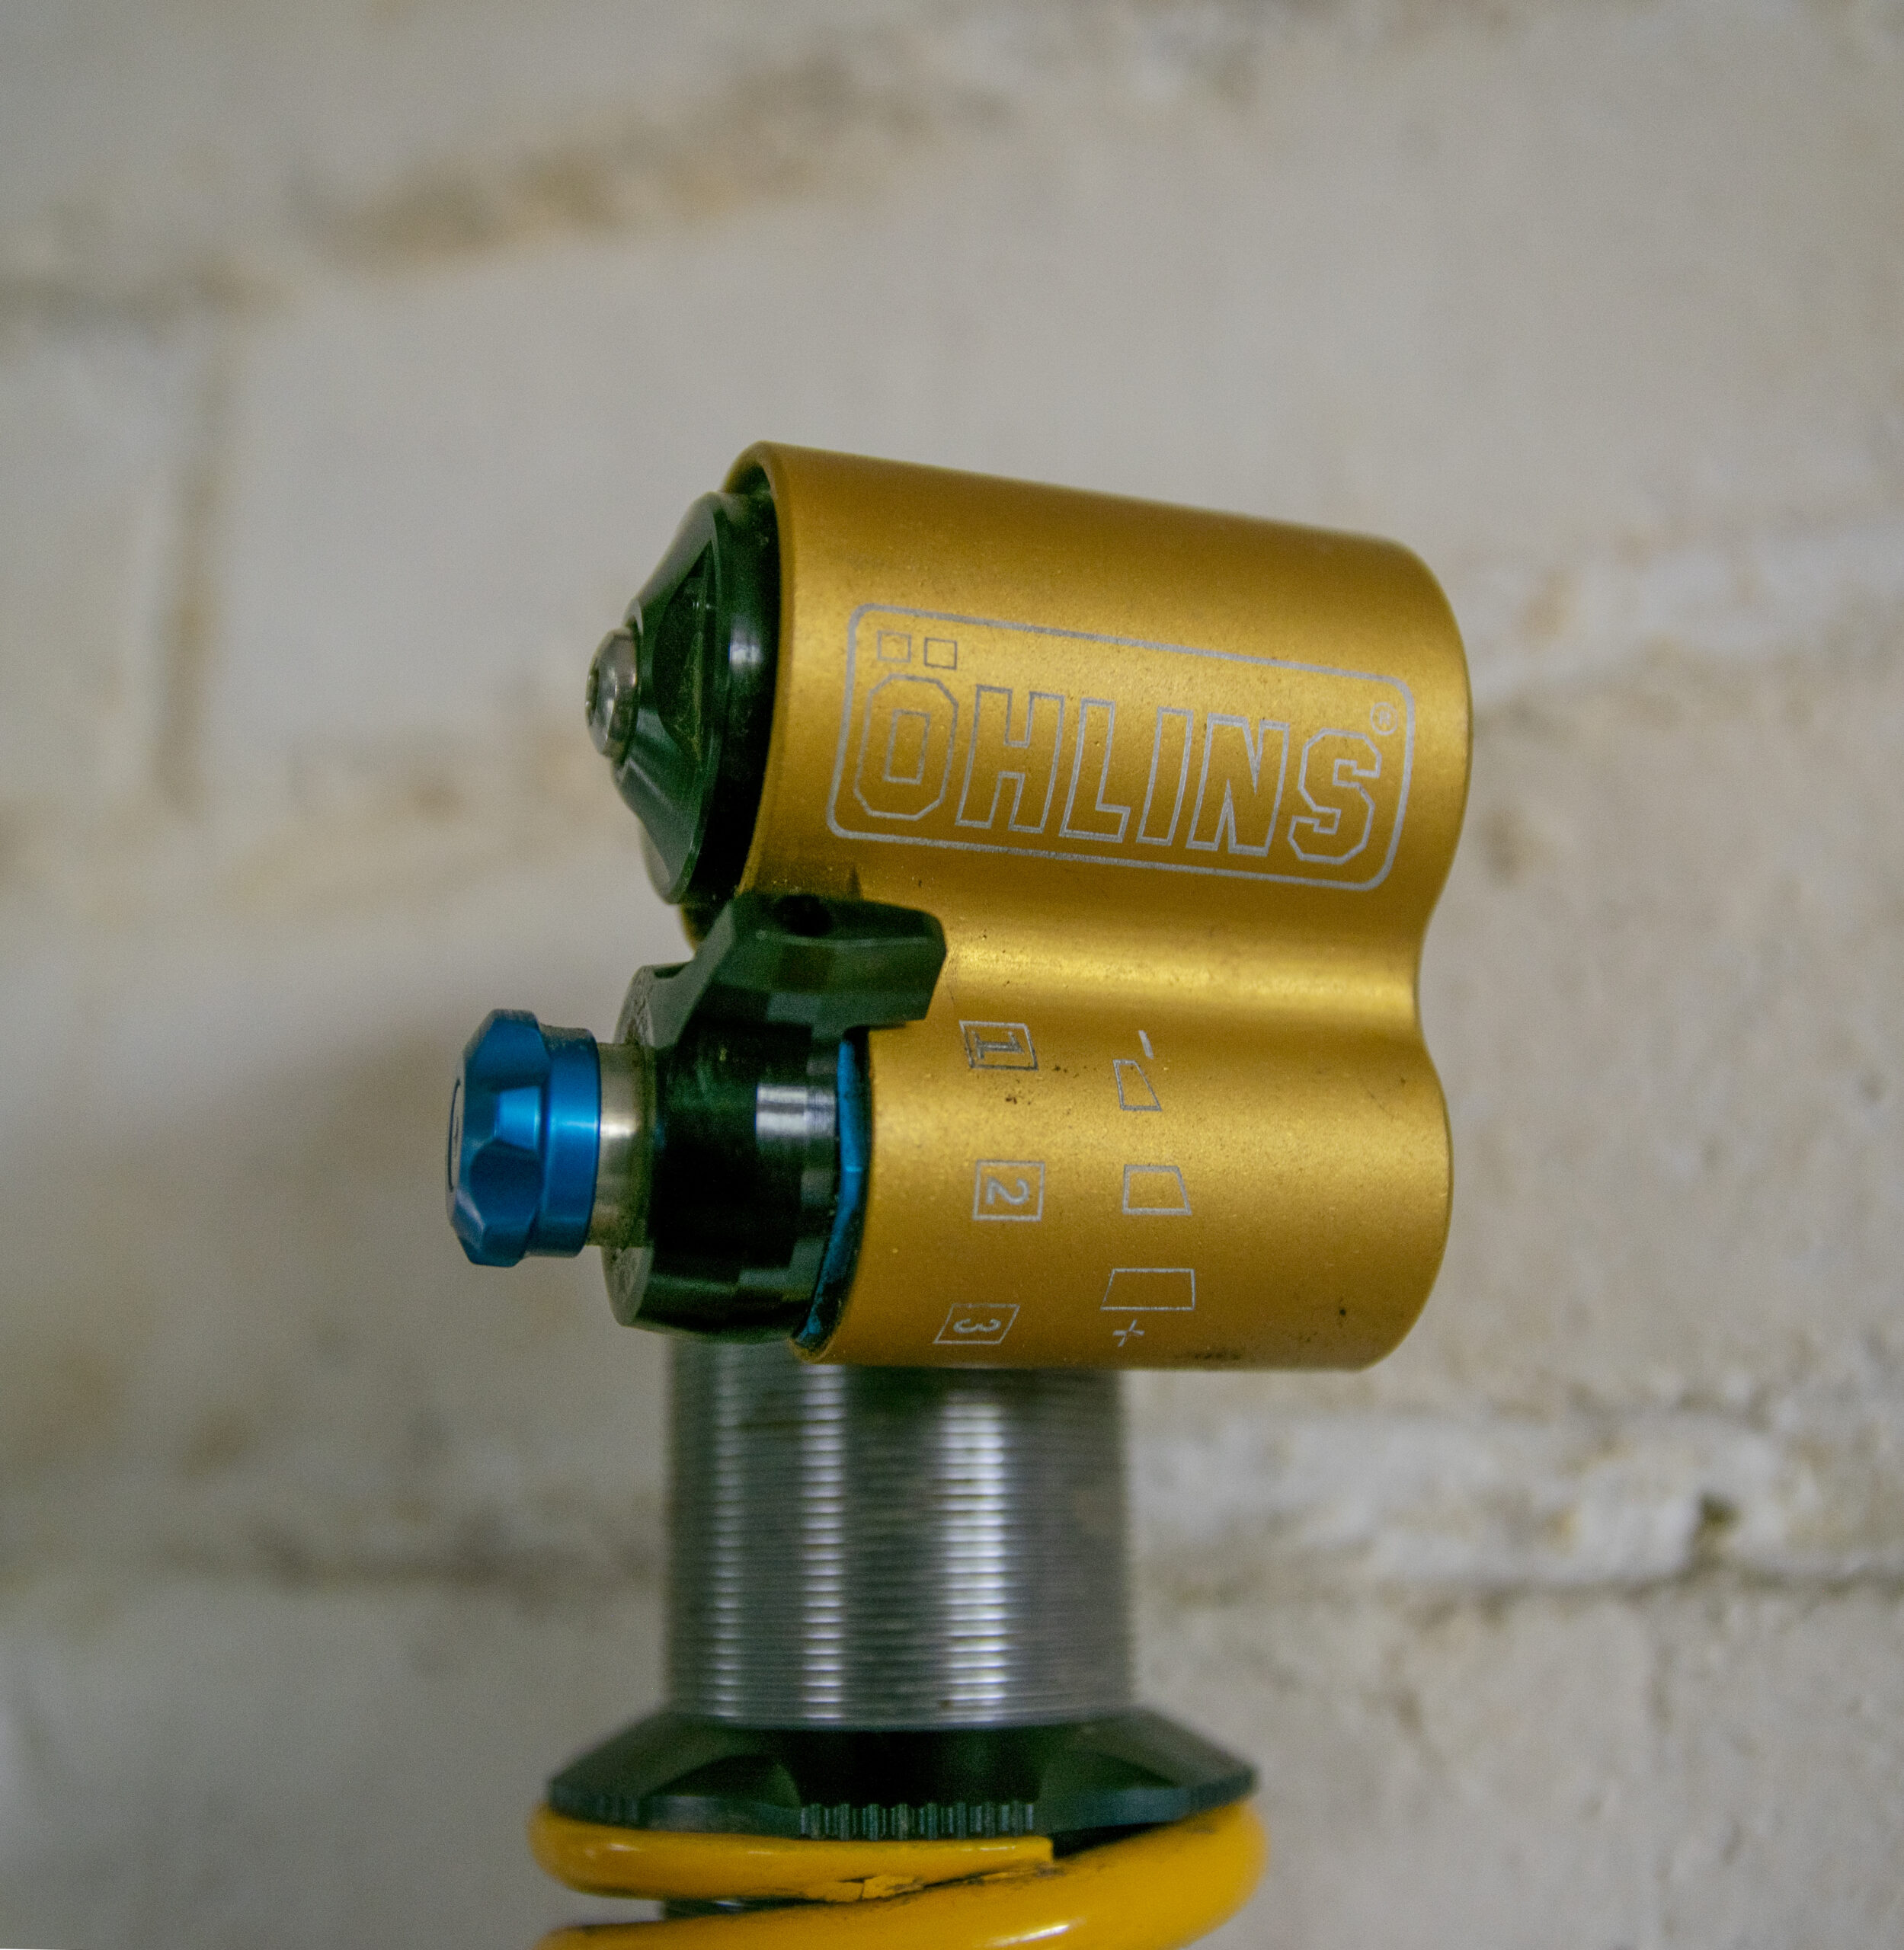 David Golay reviews the Ohlins TTX22 for Blister